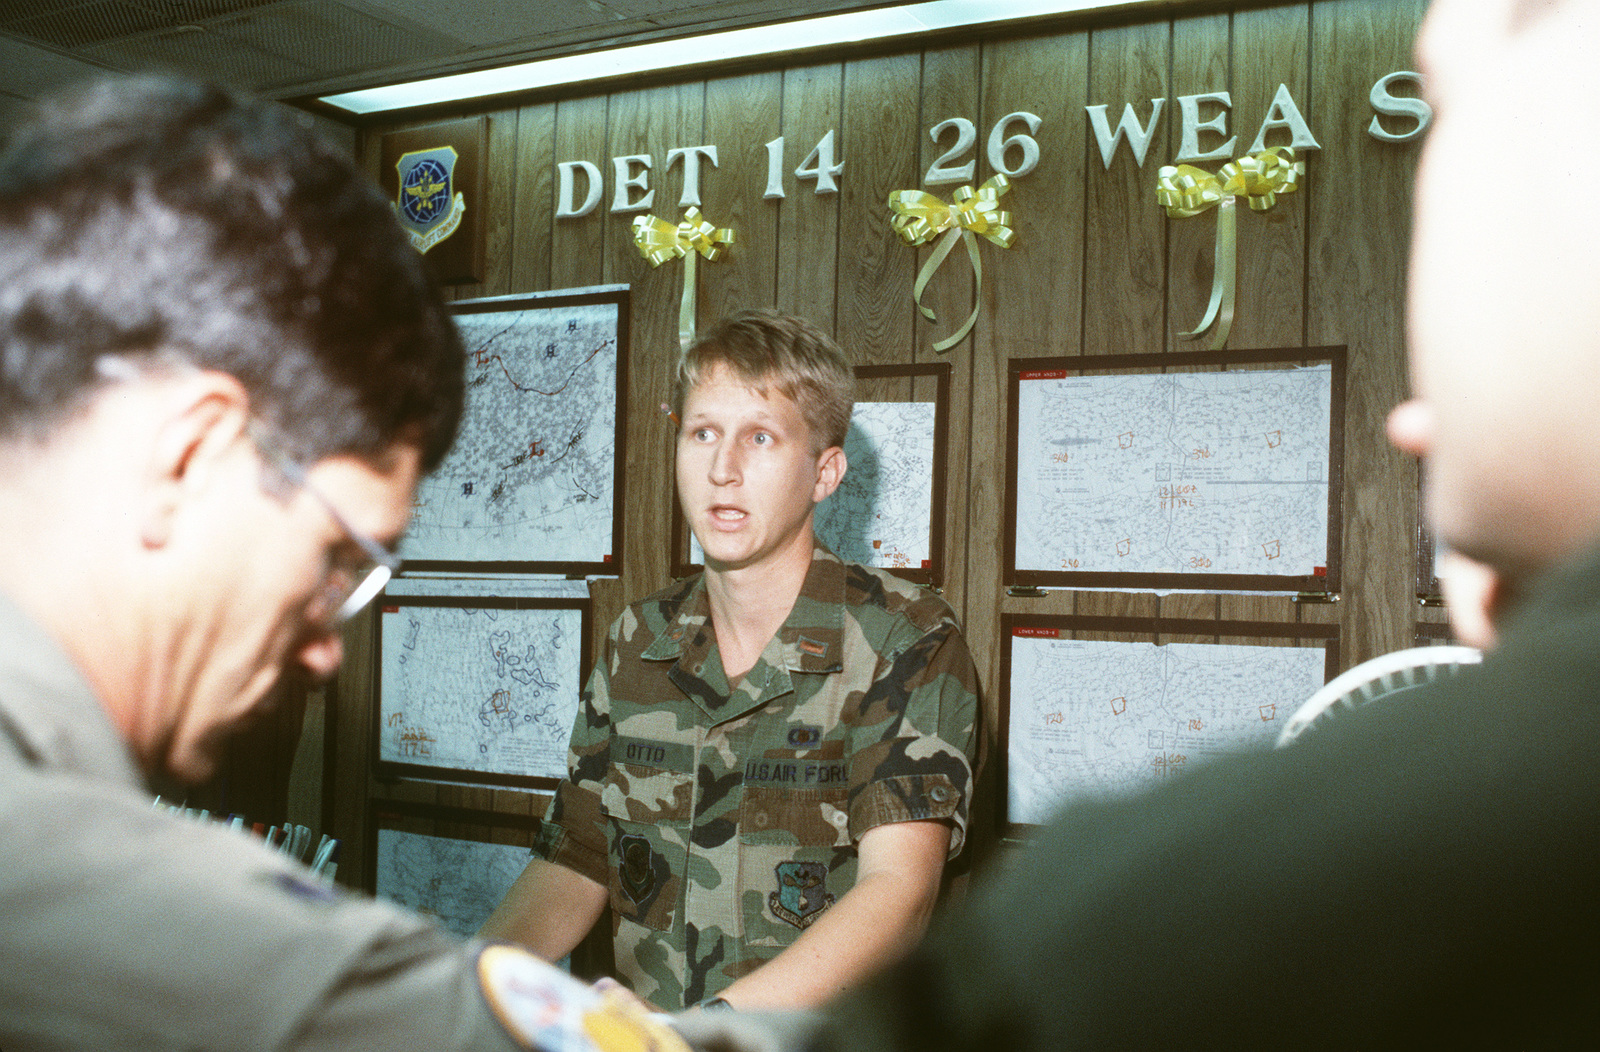 Second LT. Walter Otto, center, a weather officer with Detachment 14, 26th Weather Squadron, briefs an air crew on current and expected weather conditions prior to the crew's flight to the Persian Gulf region in support of Operation Desert Shield